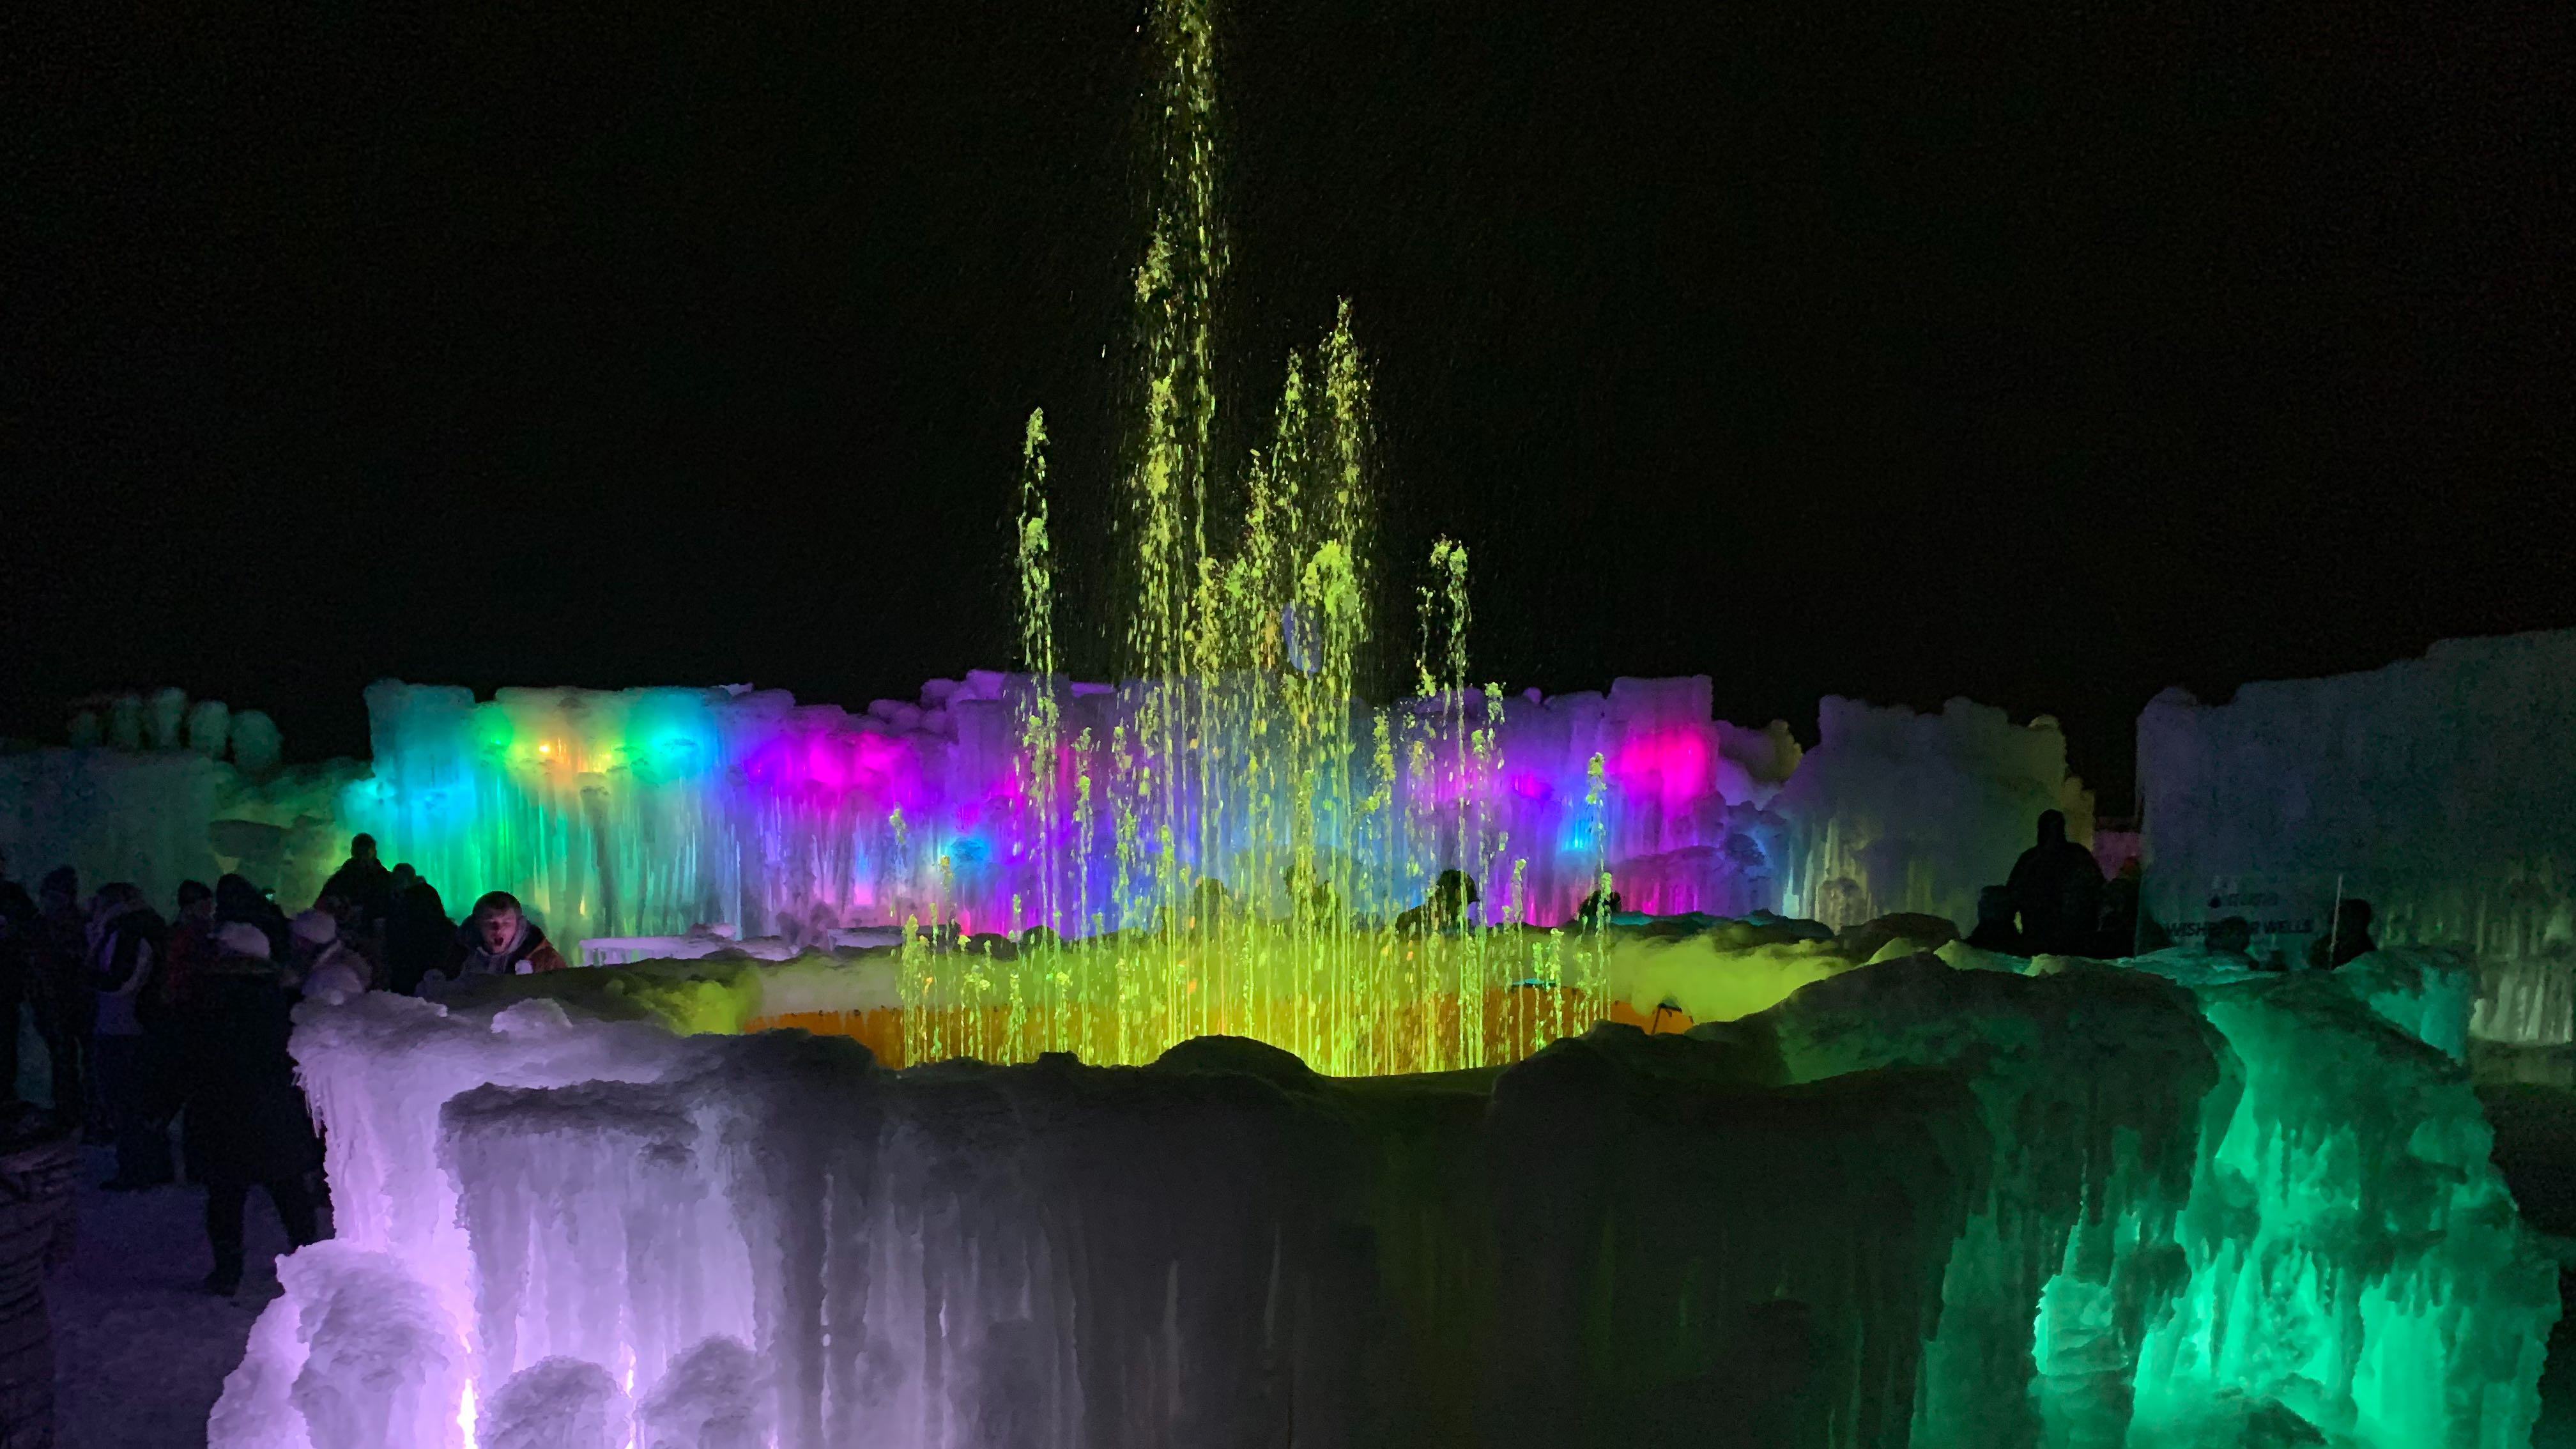 illuminated pieces of ice as part of the Lake Geneva ice castles